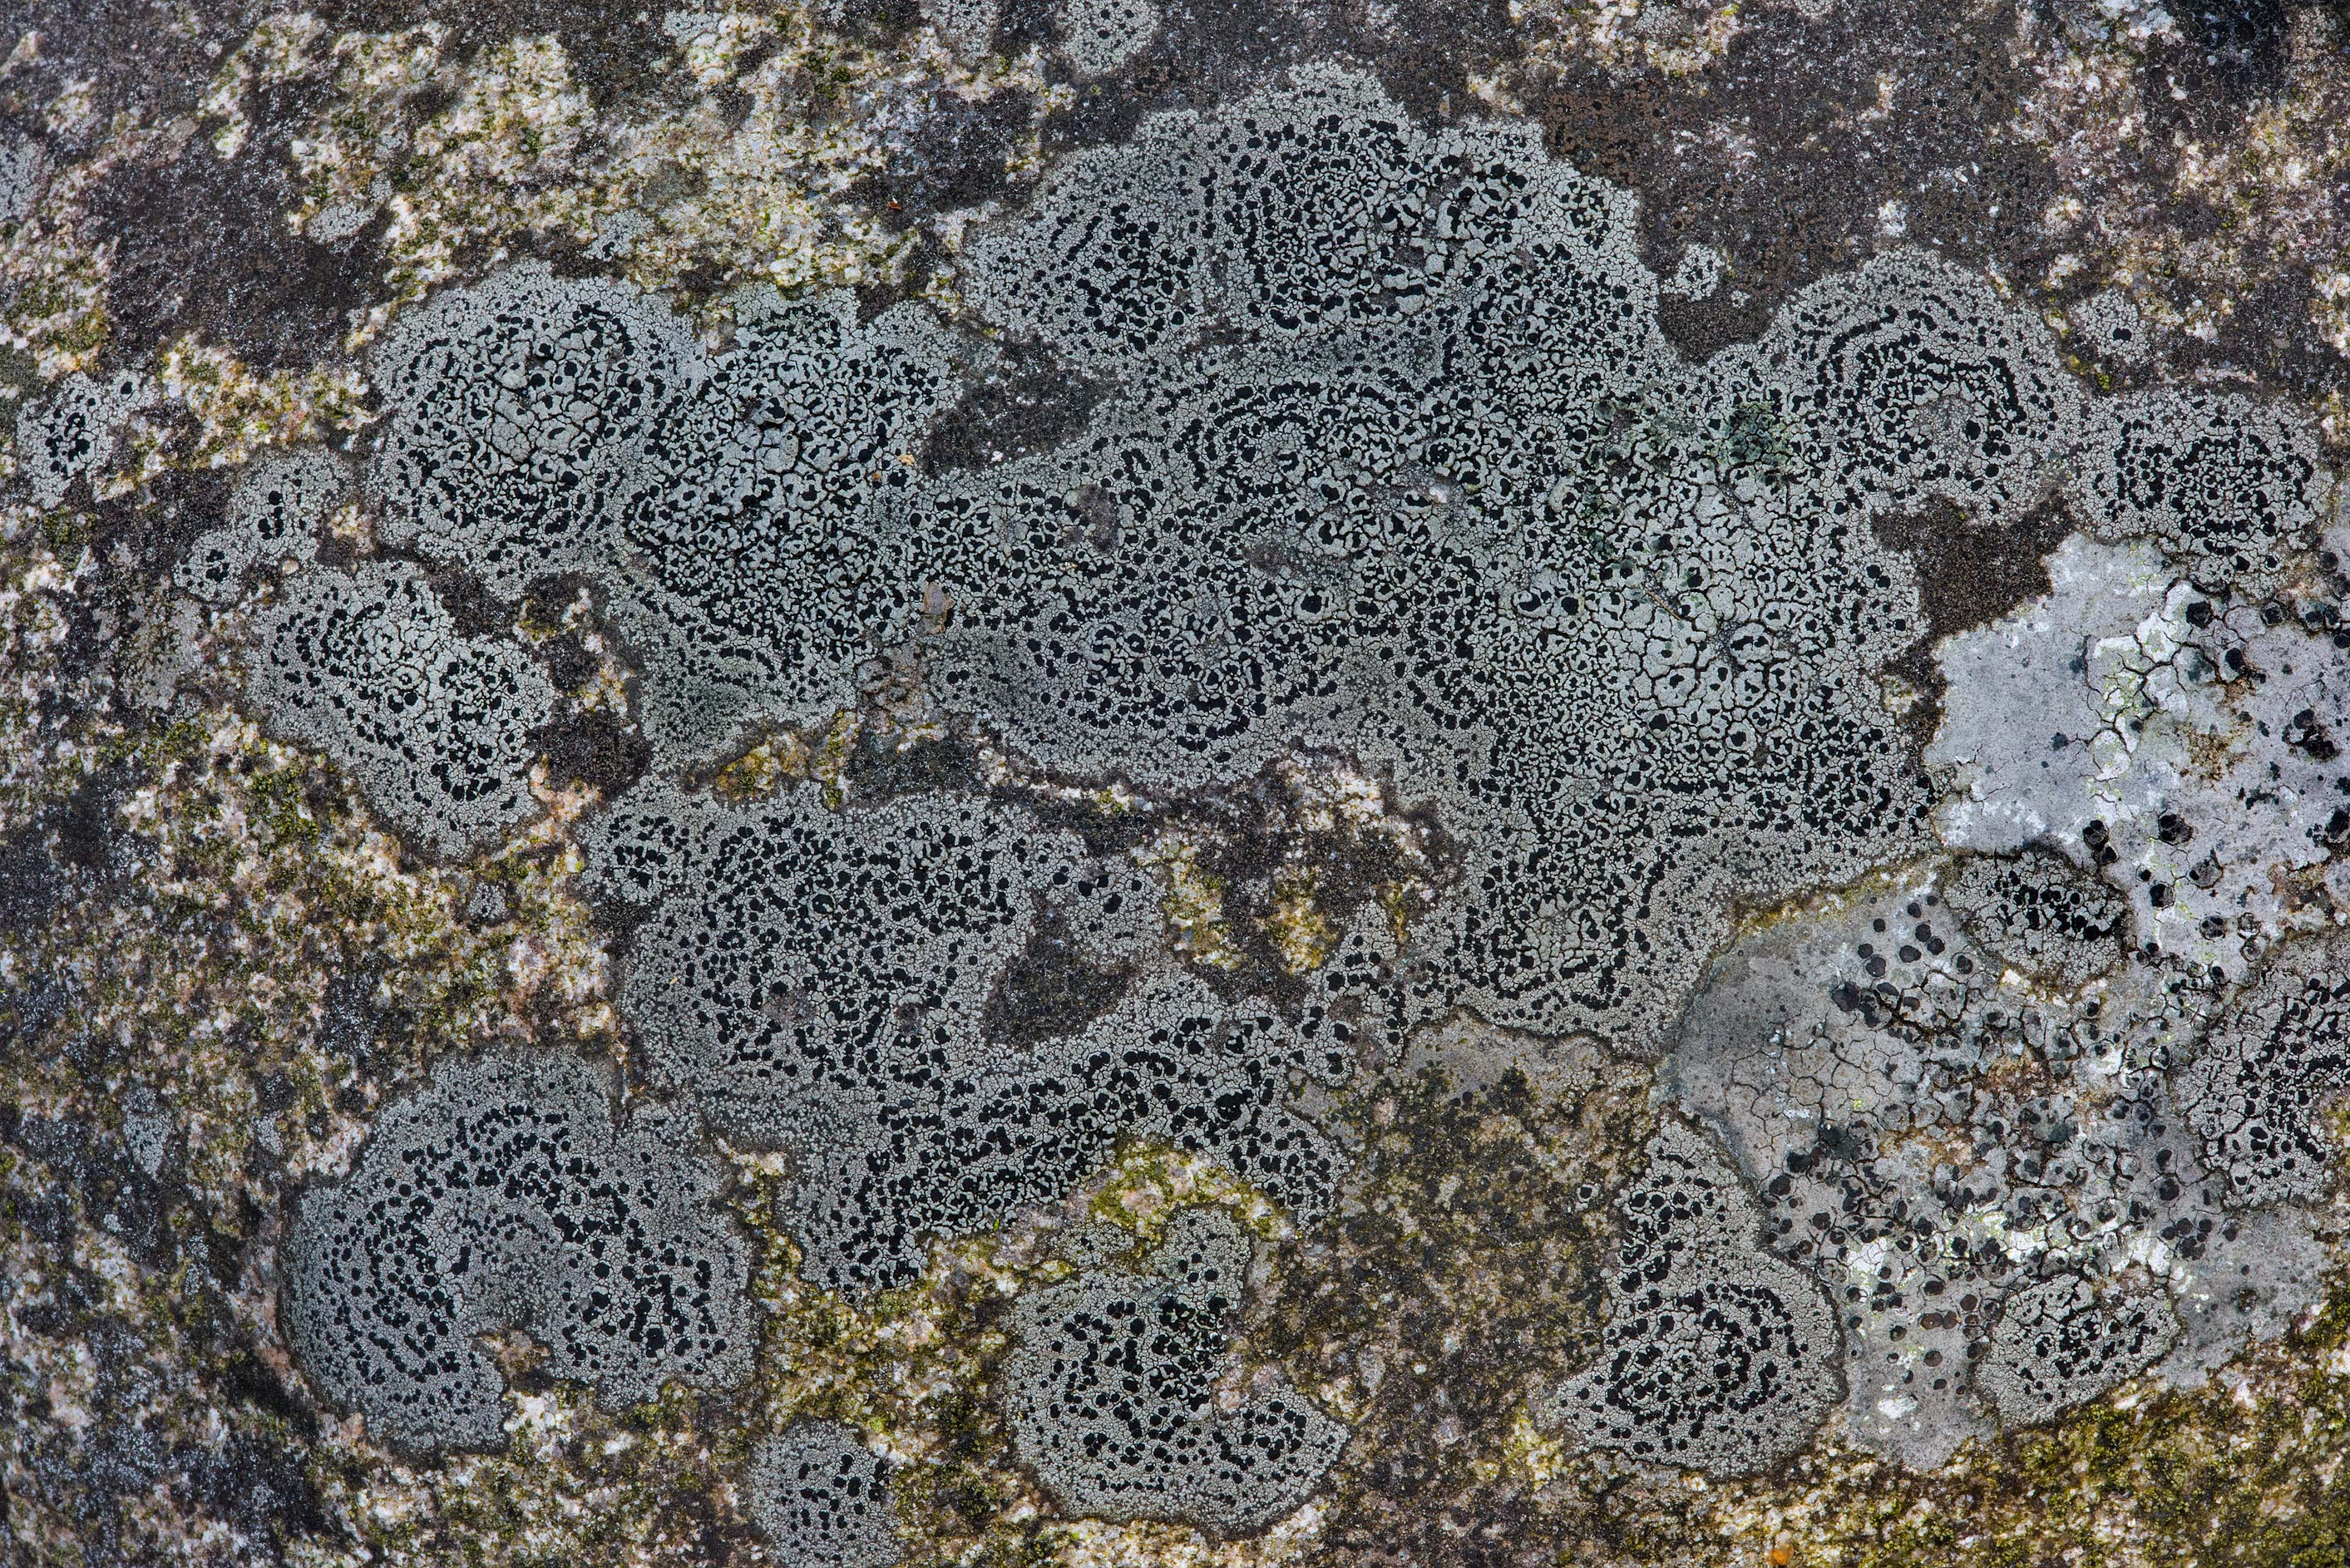 Black and grey crustose lichen on the surface of...miles north from St.Petersburg. Russia